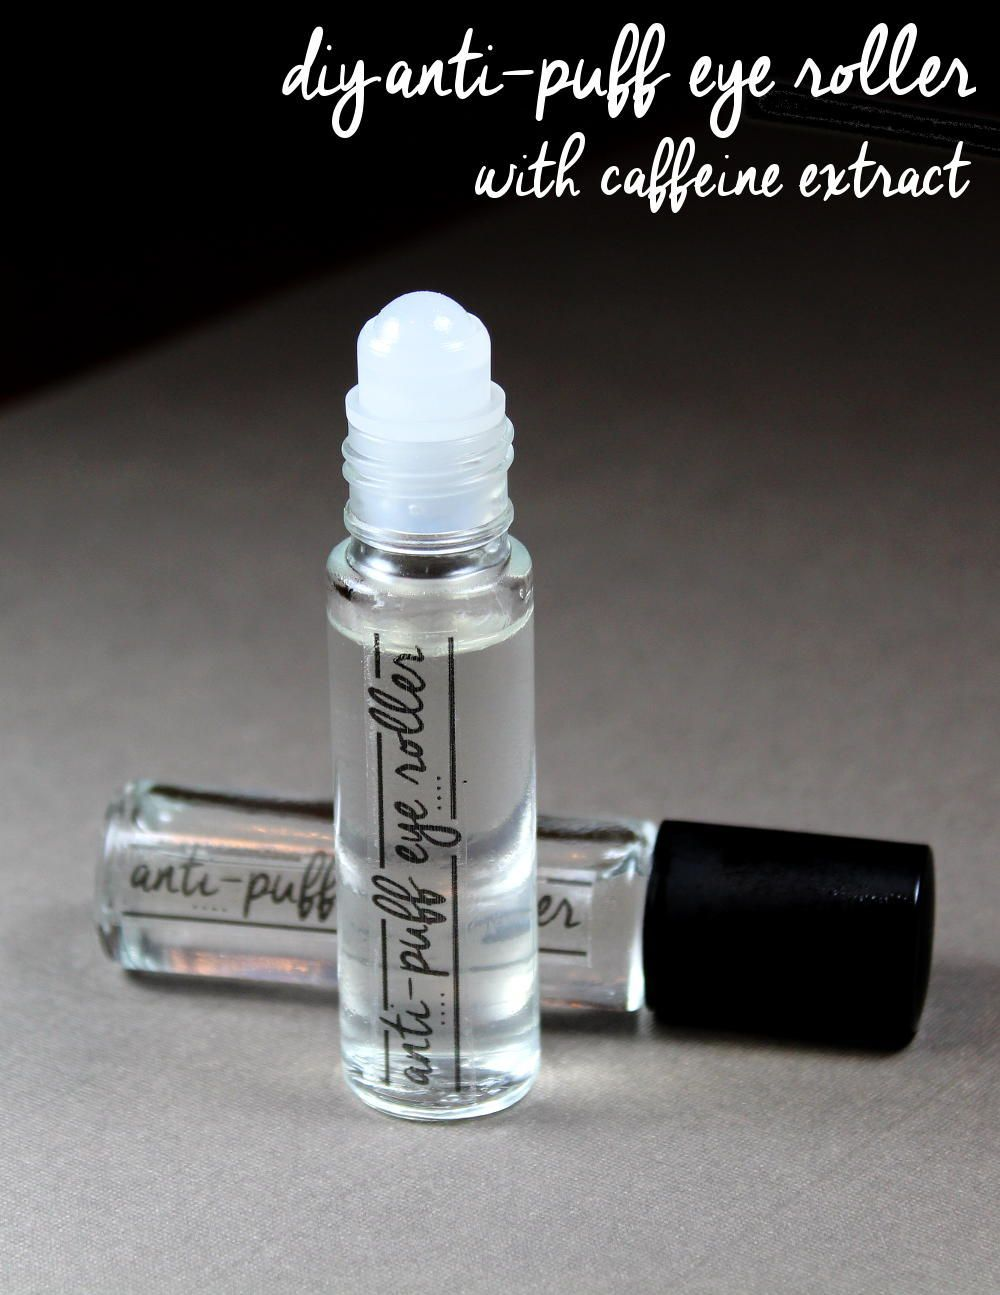 DIY AntiPuff Eye Roller for Tired, Puffy Eyes and Under